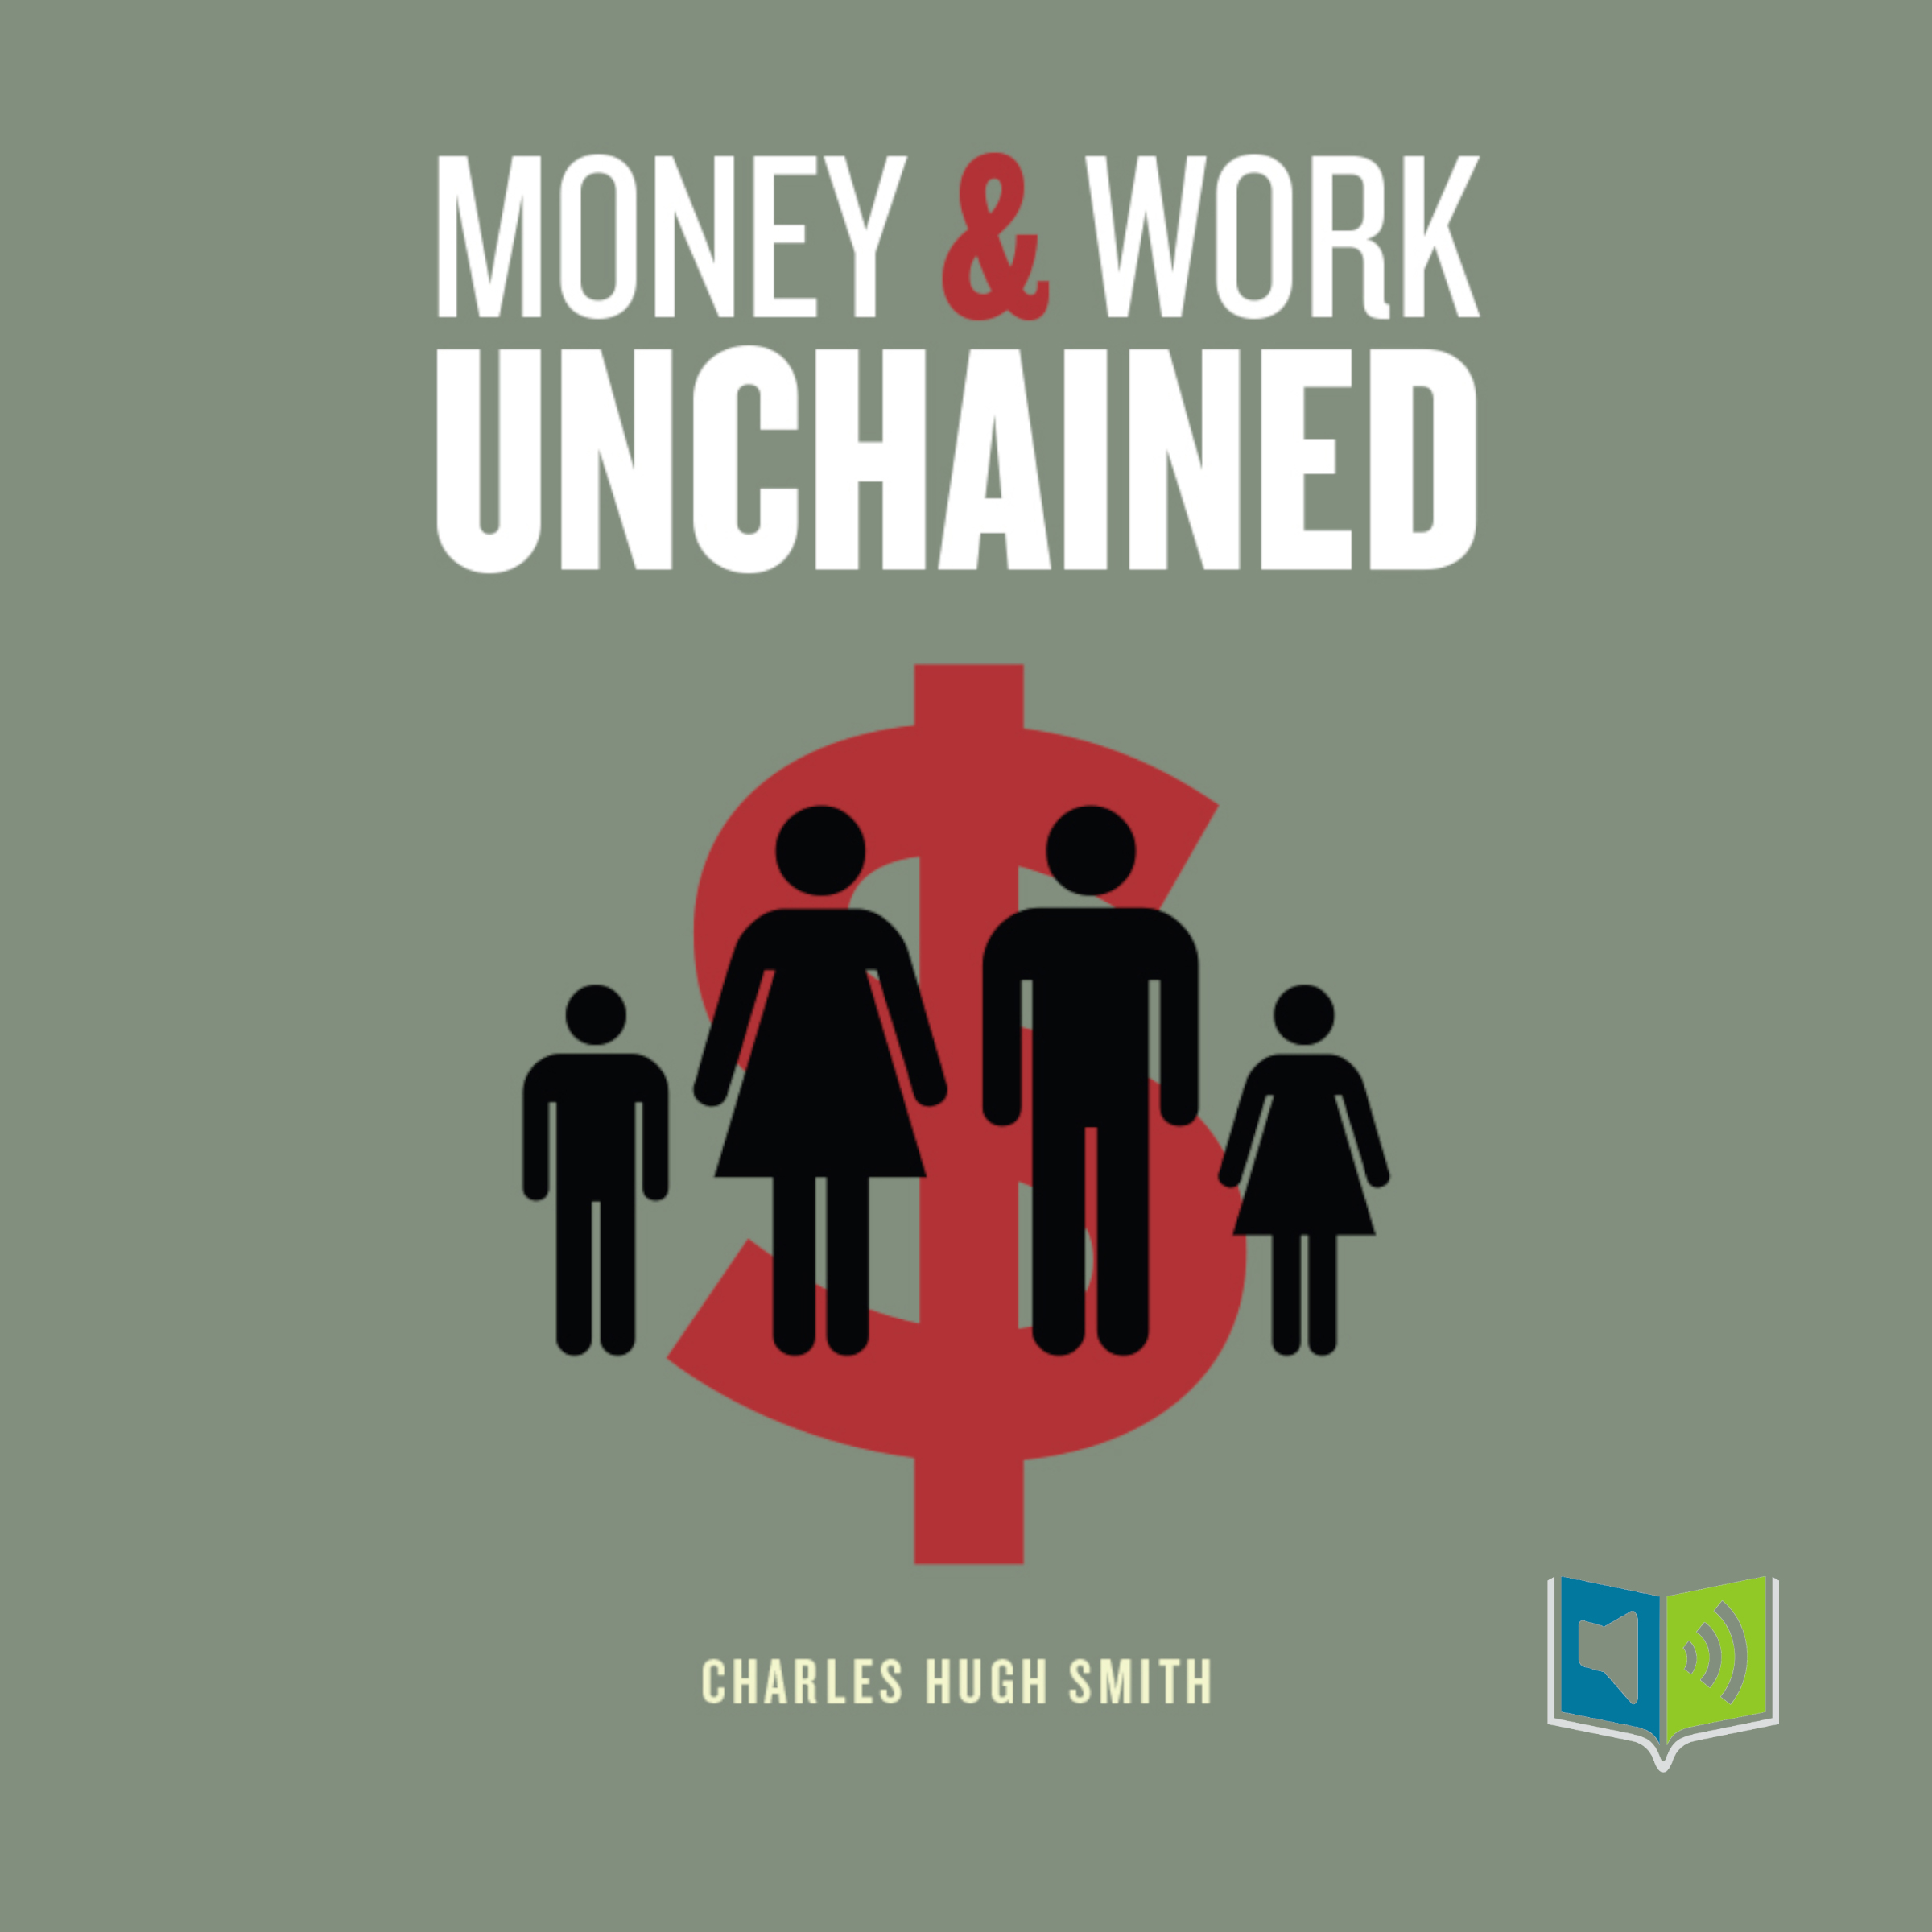 Money and Work Unchained by Charles Hugh Smith